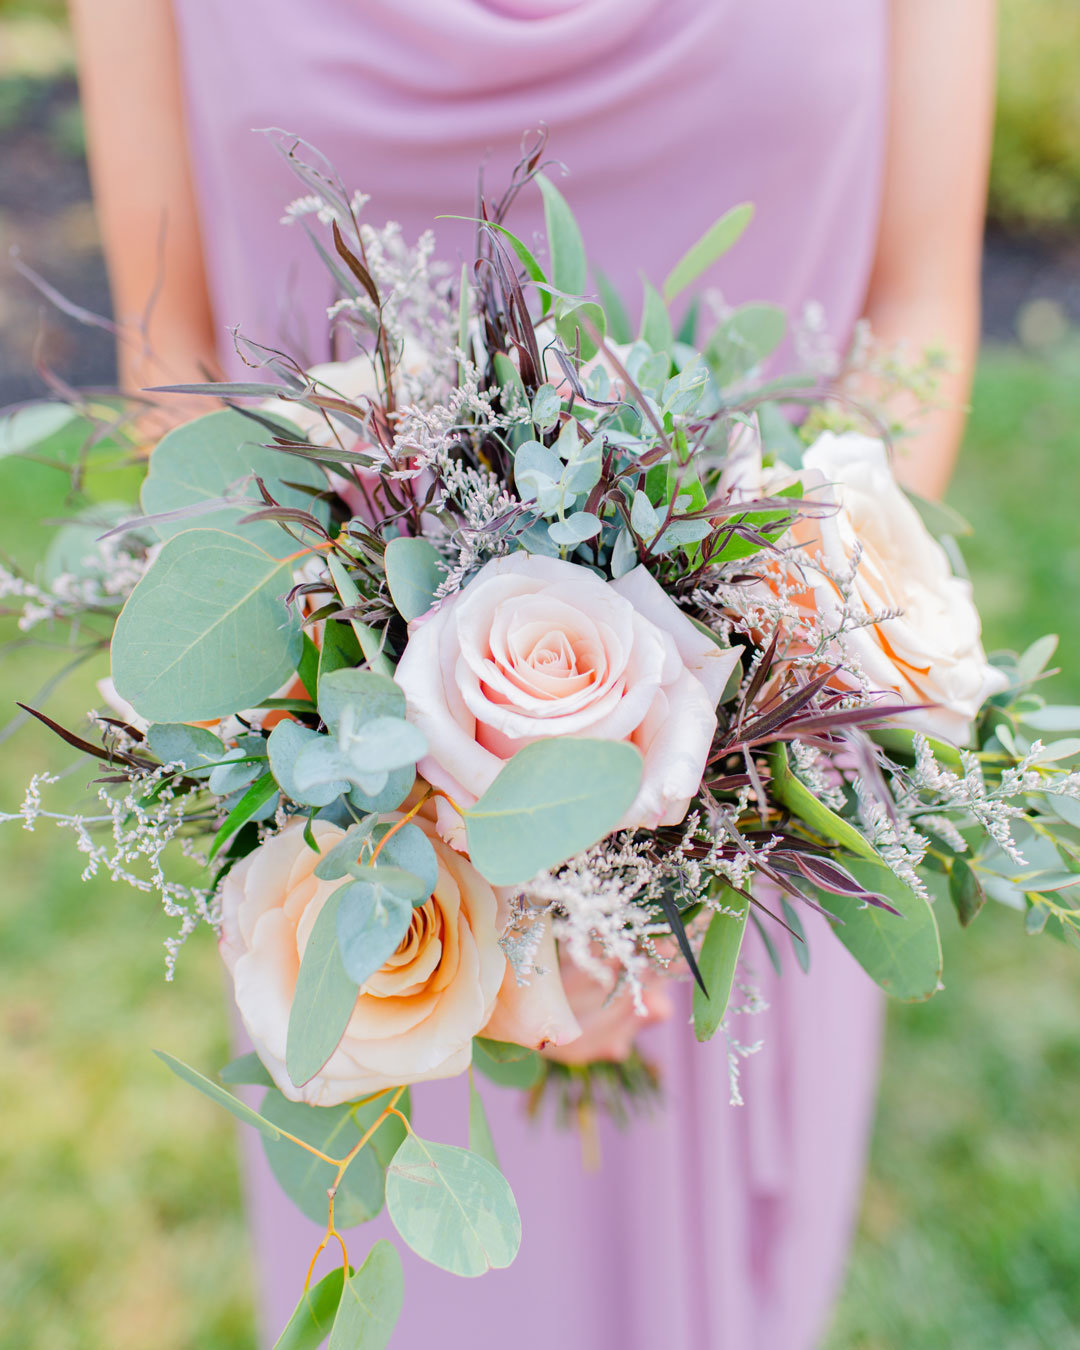 Bridesmaid in mauve dress holding rose bouquet